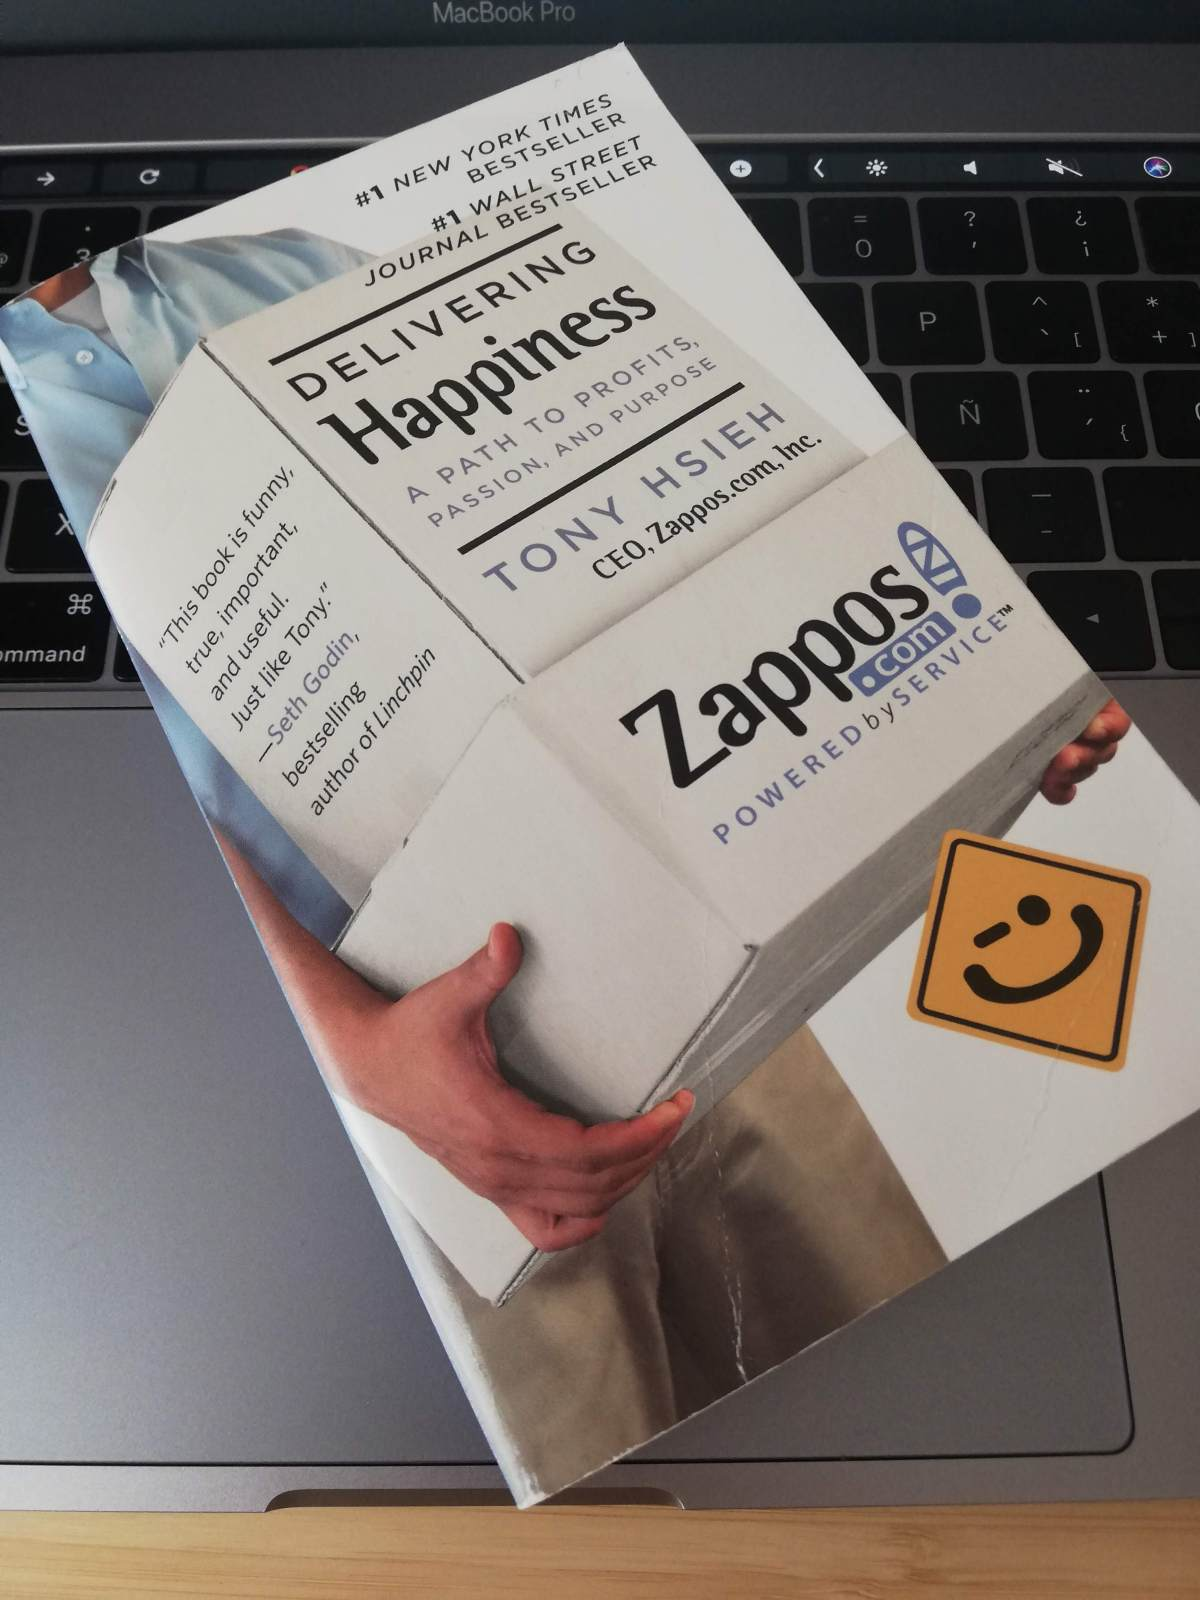 Delivering Happiness by Tony Hsieh - Book review